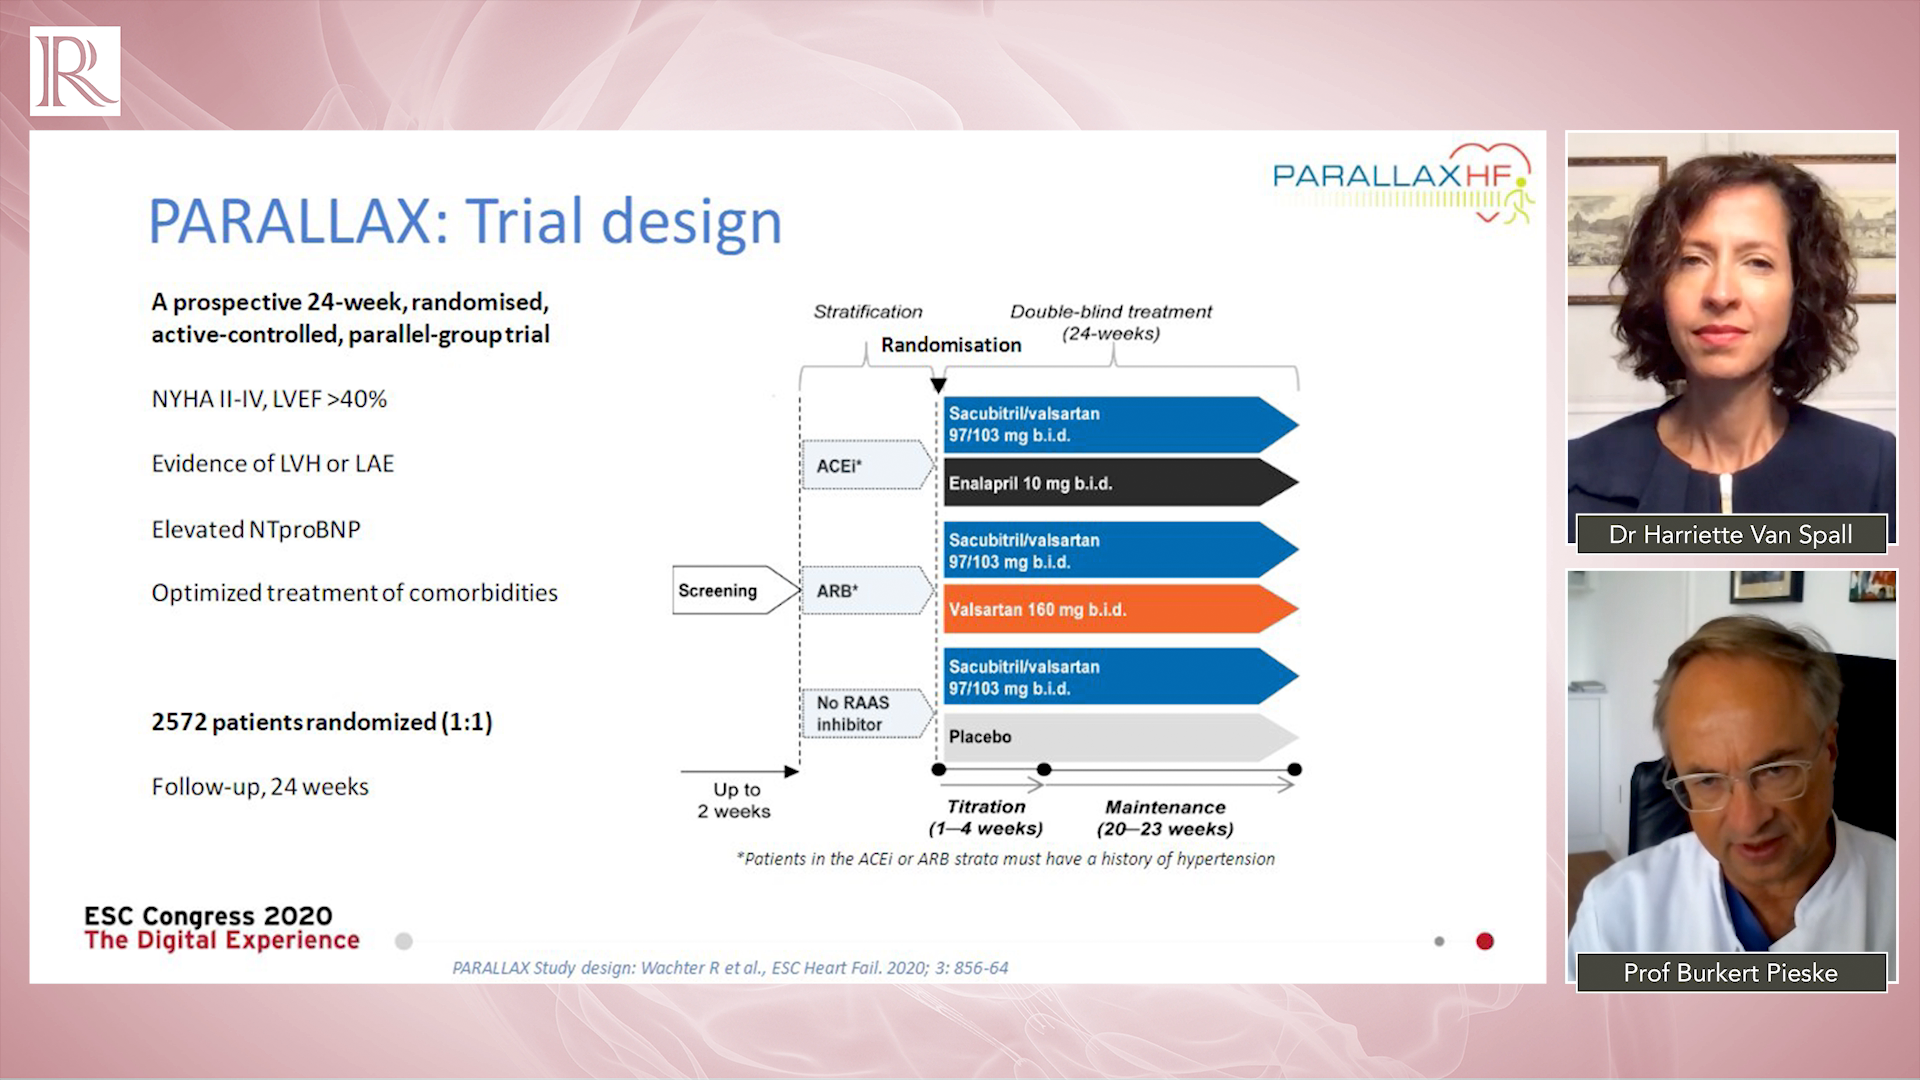 ESC 2020 Discussion: The PARALLAX Trial — Prof Burkert Pieske & Dr Harriette Van Spall